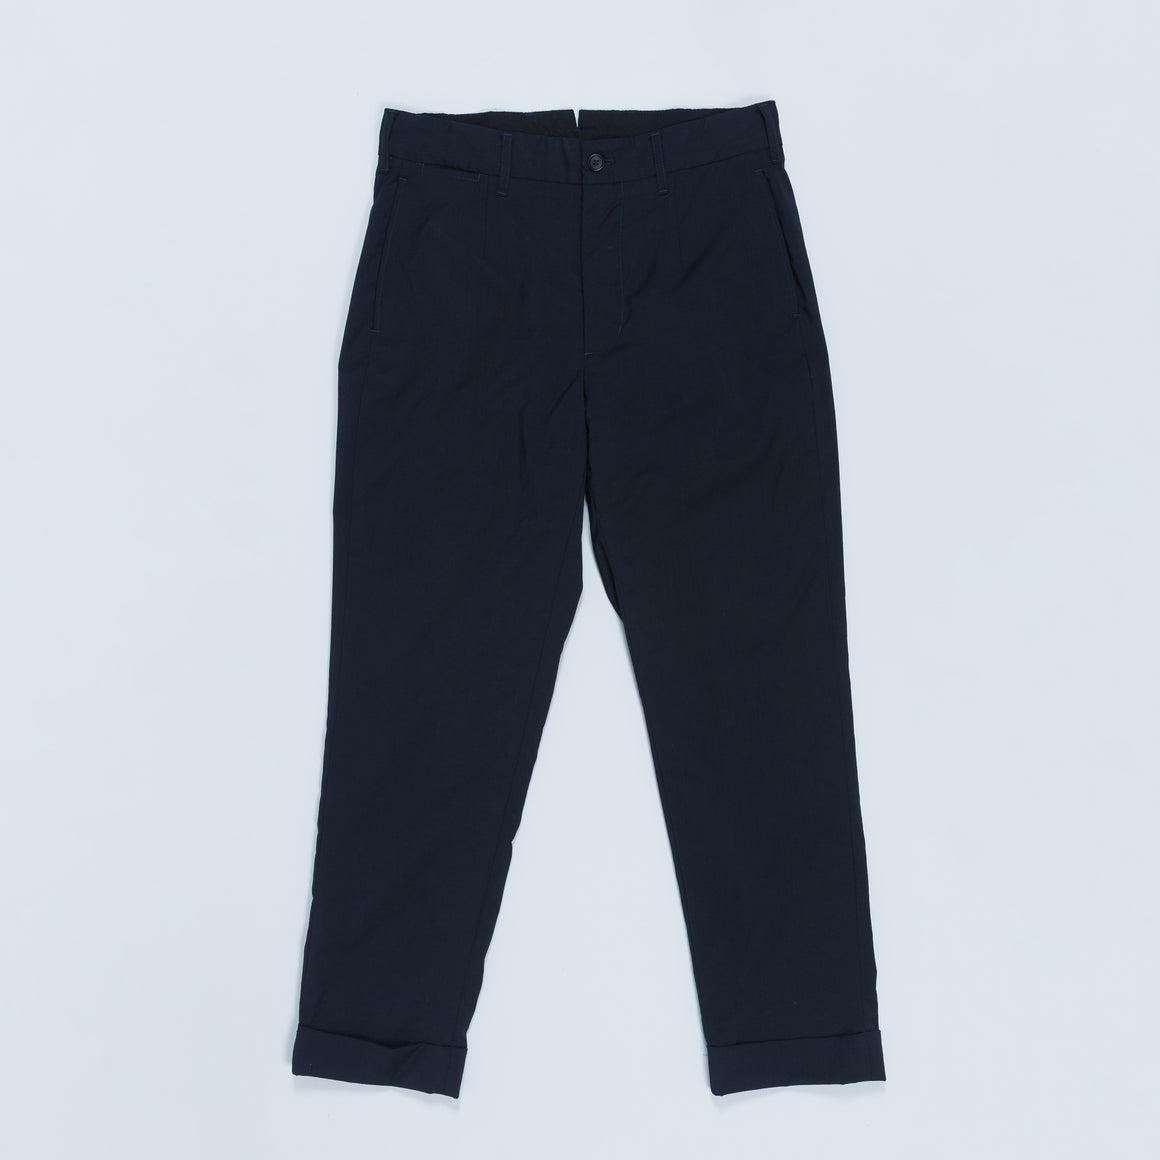 Andover Pant - Dk. Navy Tropical Wool - Up There